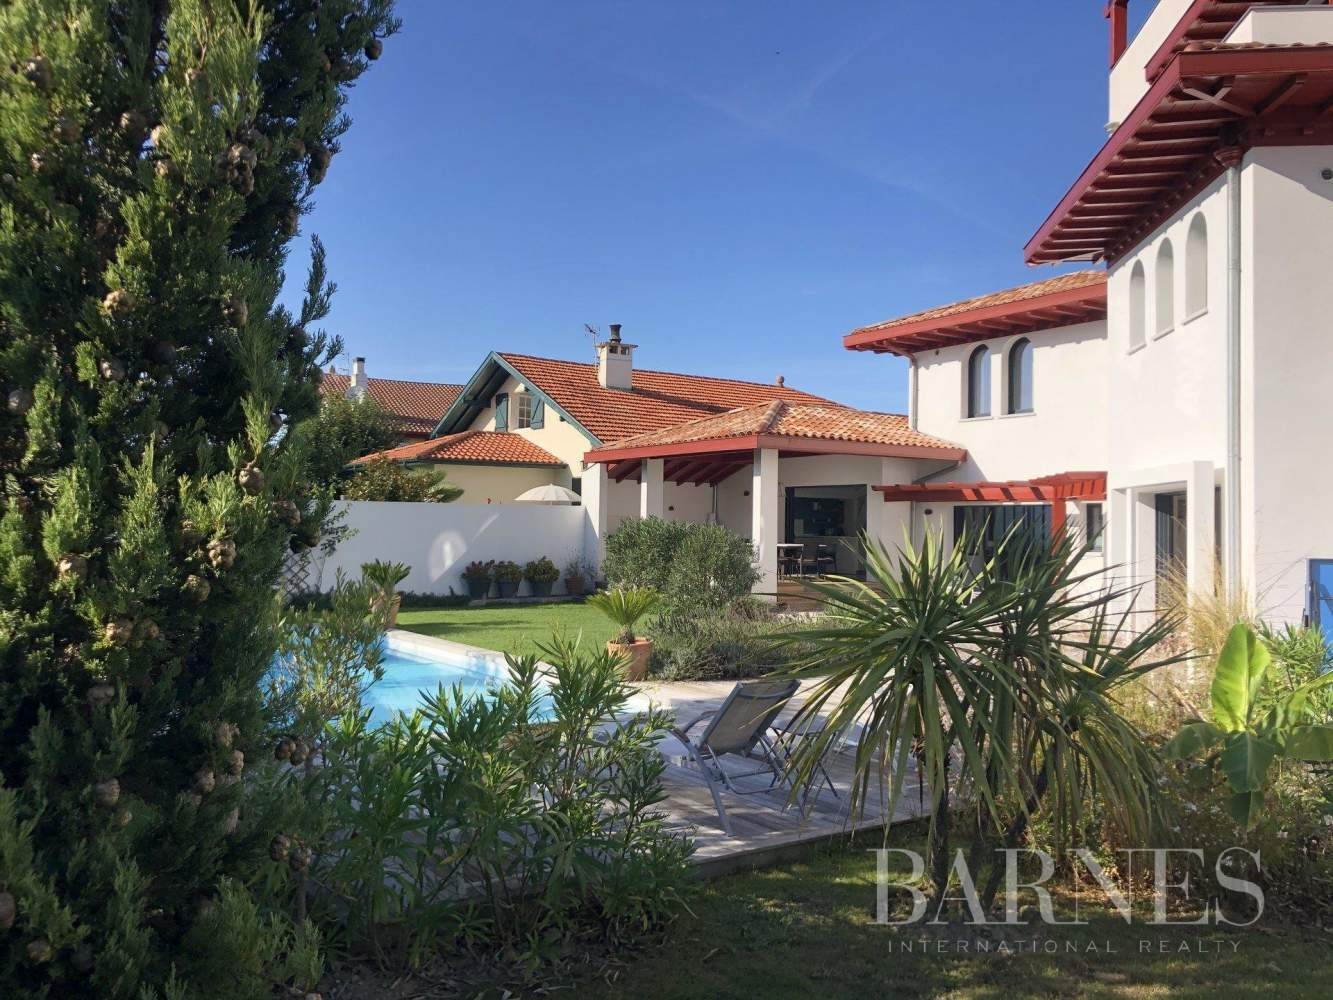 VERY NICE CONTEMPORARY HOUSE, 10 MINUTES WALK FROM THE BEACH OF SAINT JEAN DE LUZ AND FROM THE CENTER, 6 BEDROOMS, 14 PERSONS. HEATED SWIMMING POOL. picture 17